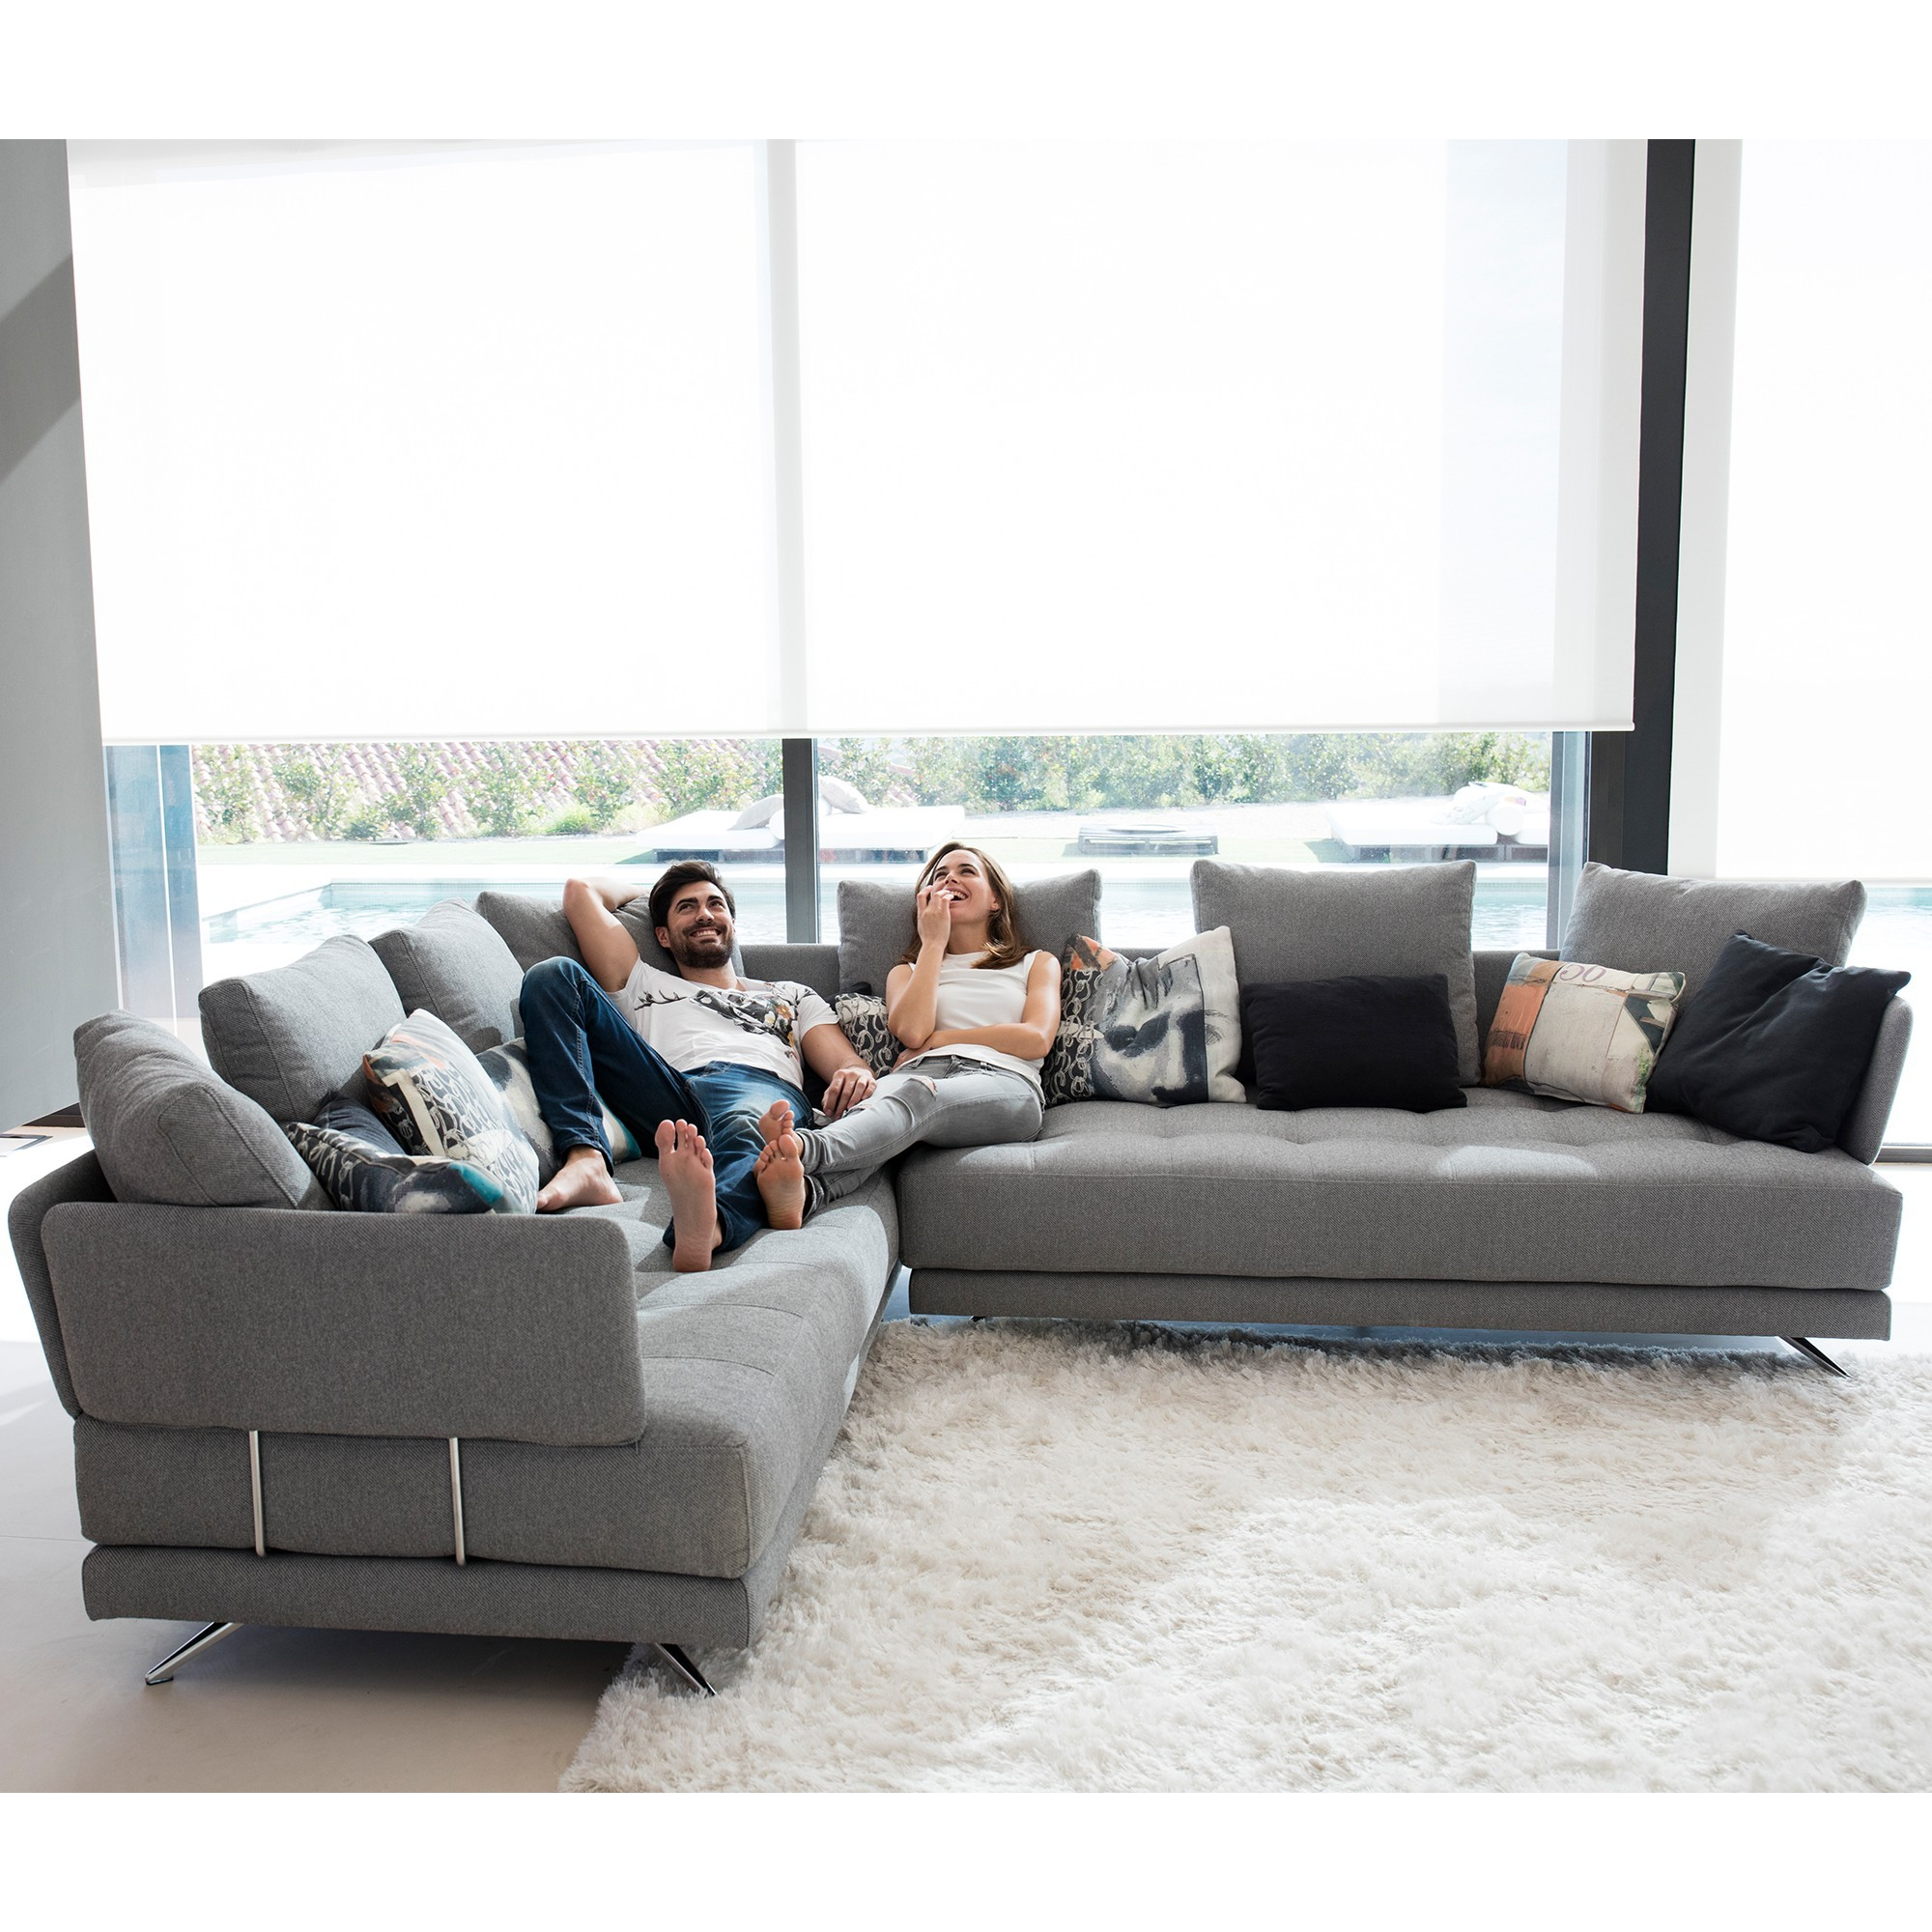 Fama Pacific Corner Group - Fabric Sofas - Cookes Furniture